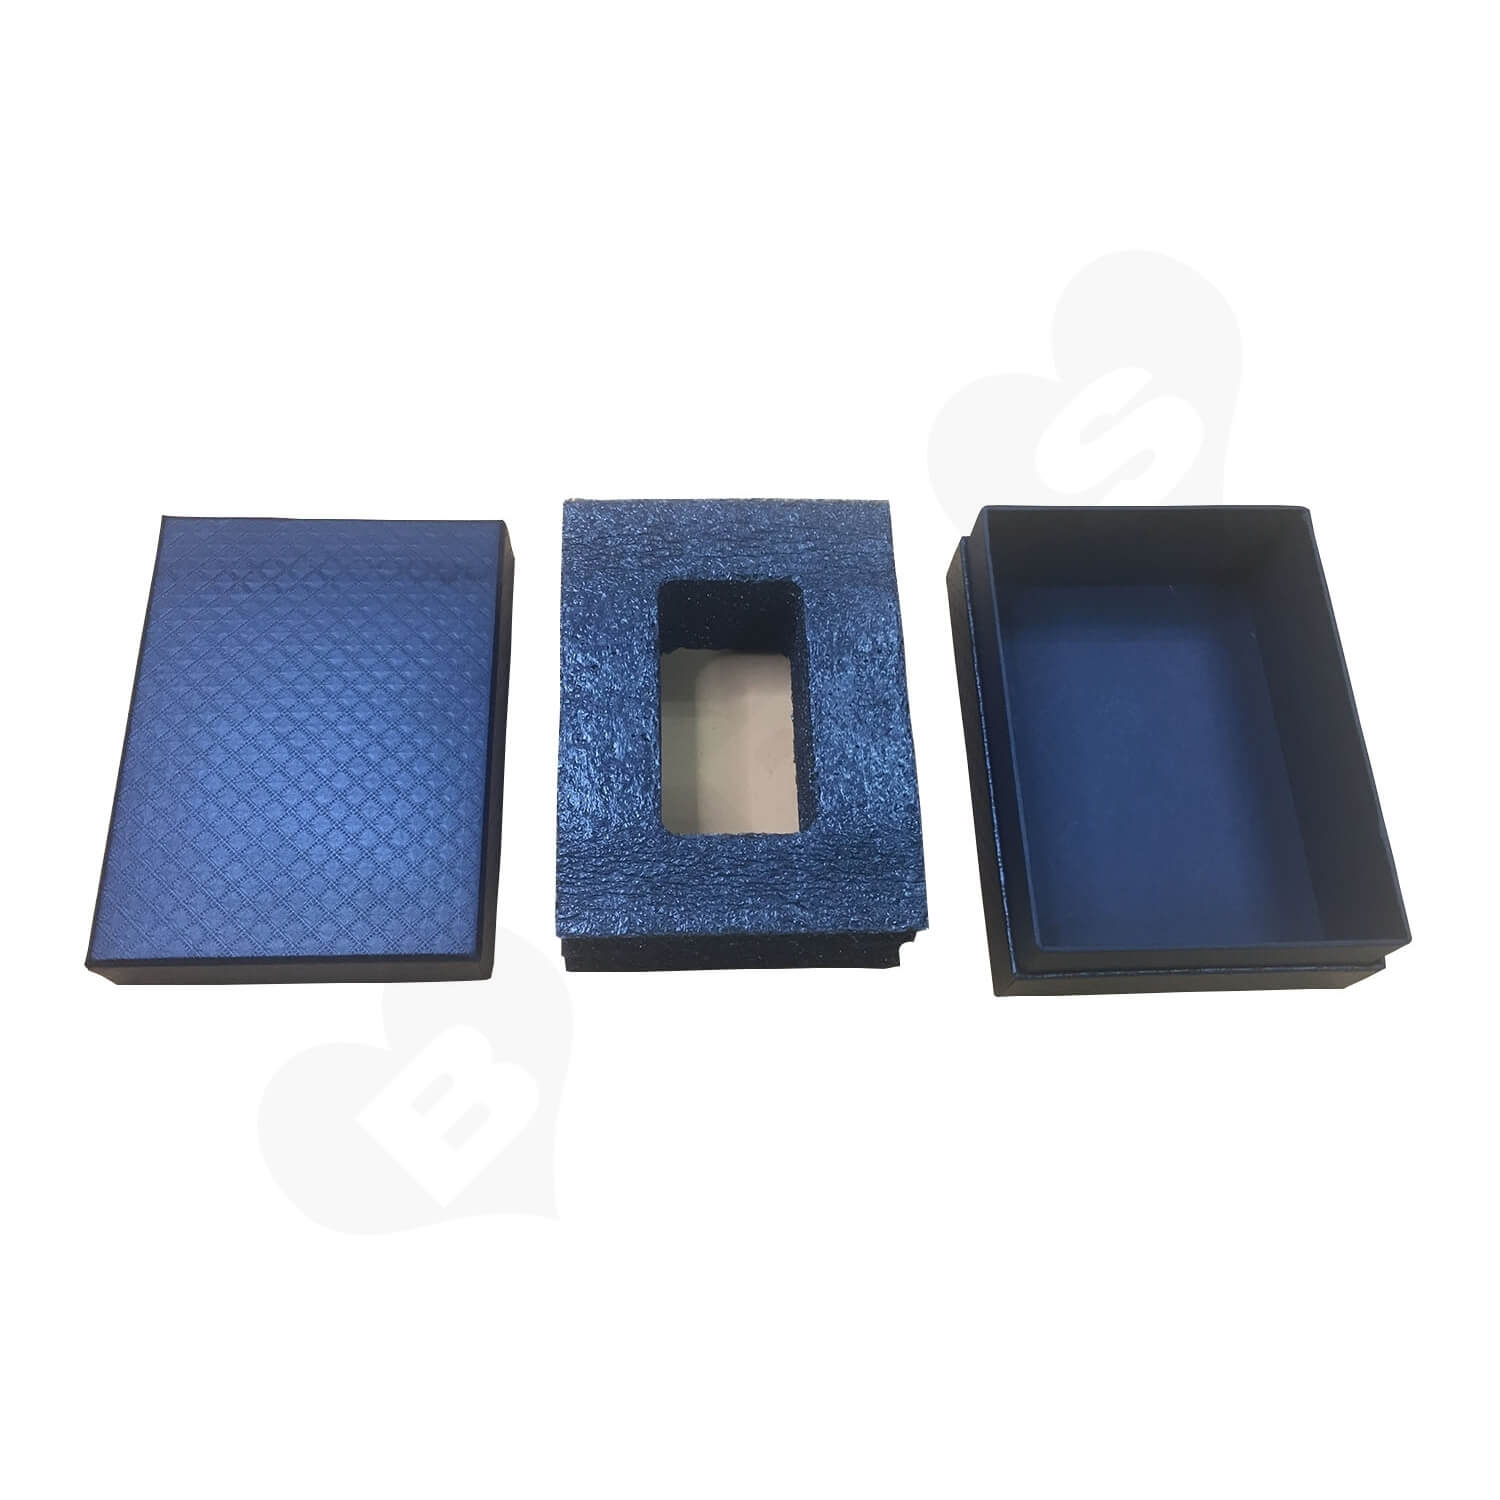 Black Texture Raphe Rigid Box With Paper Sleeve Side View 4